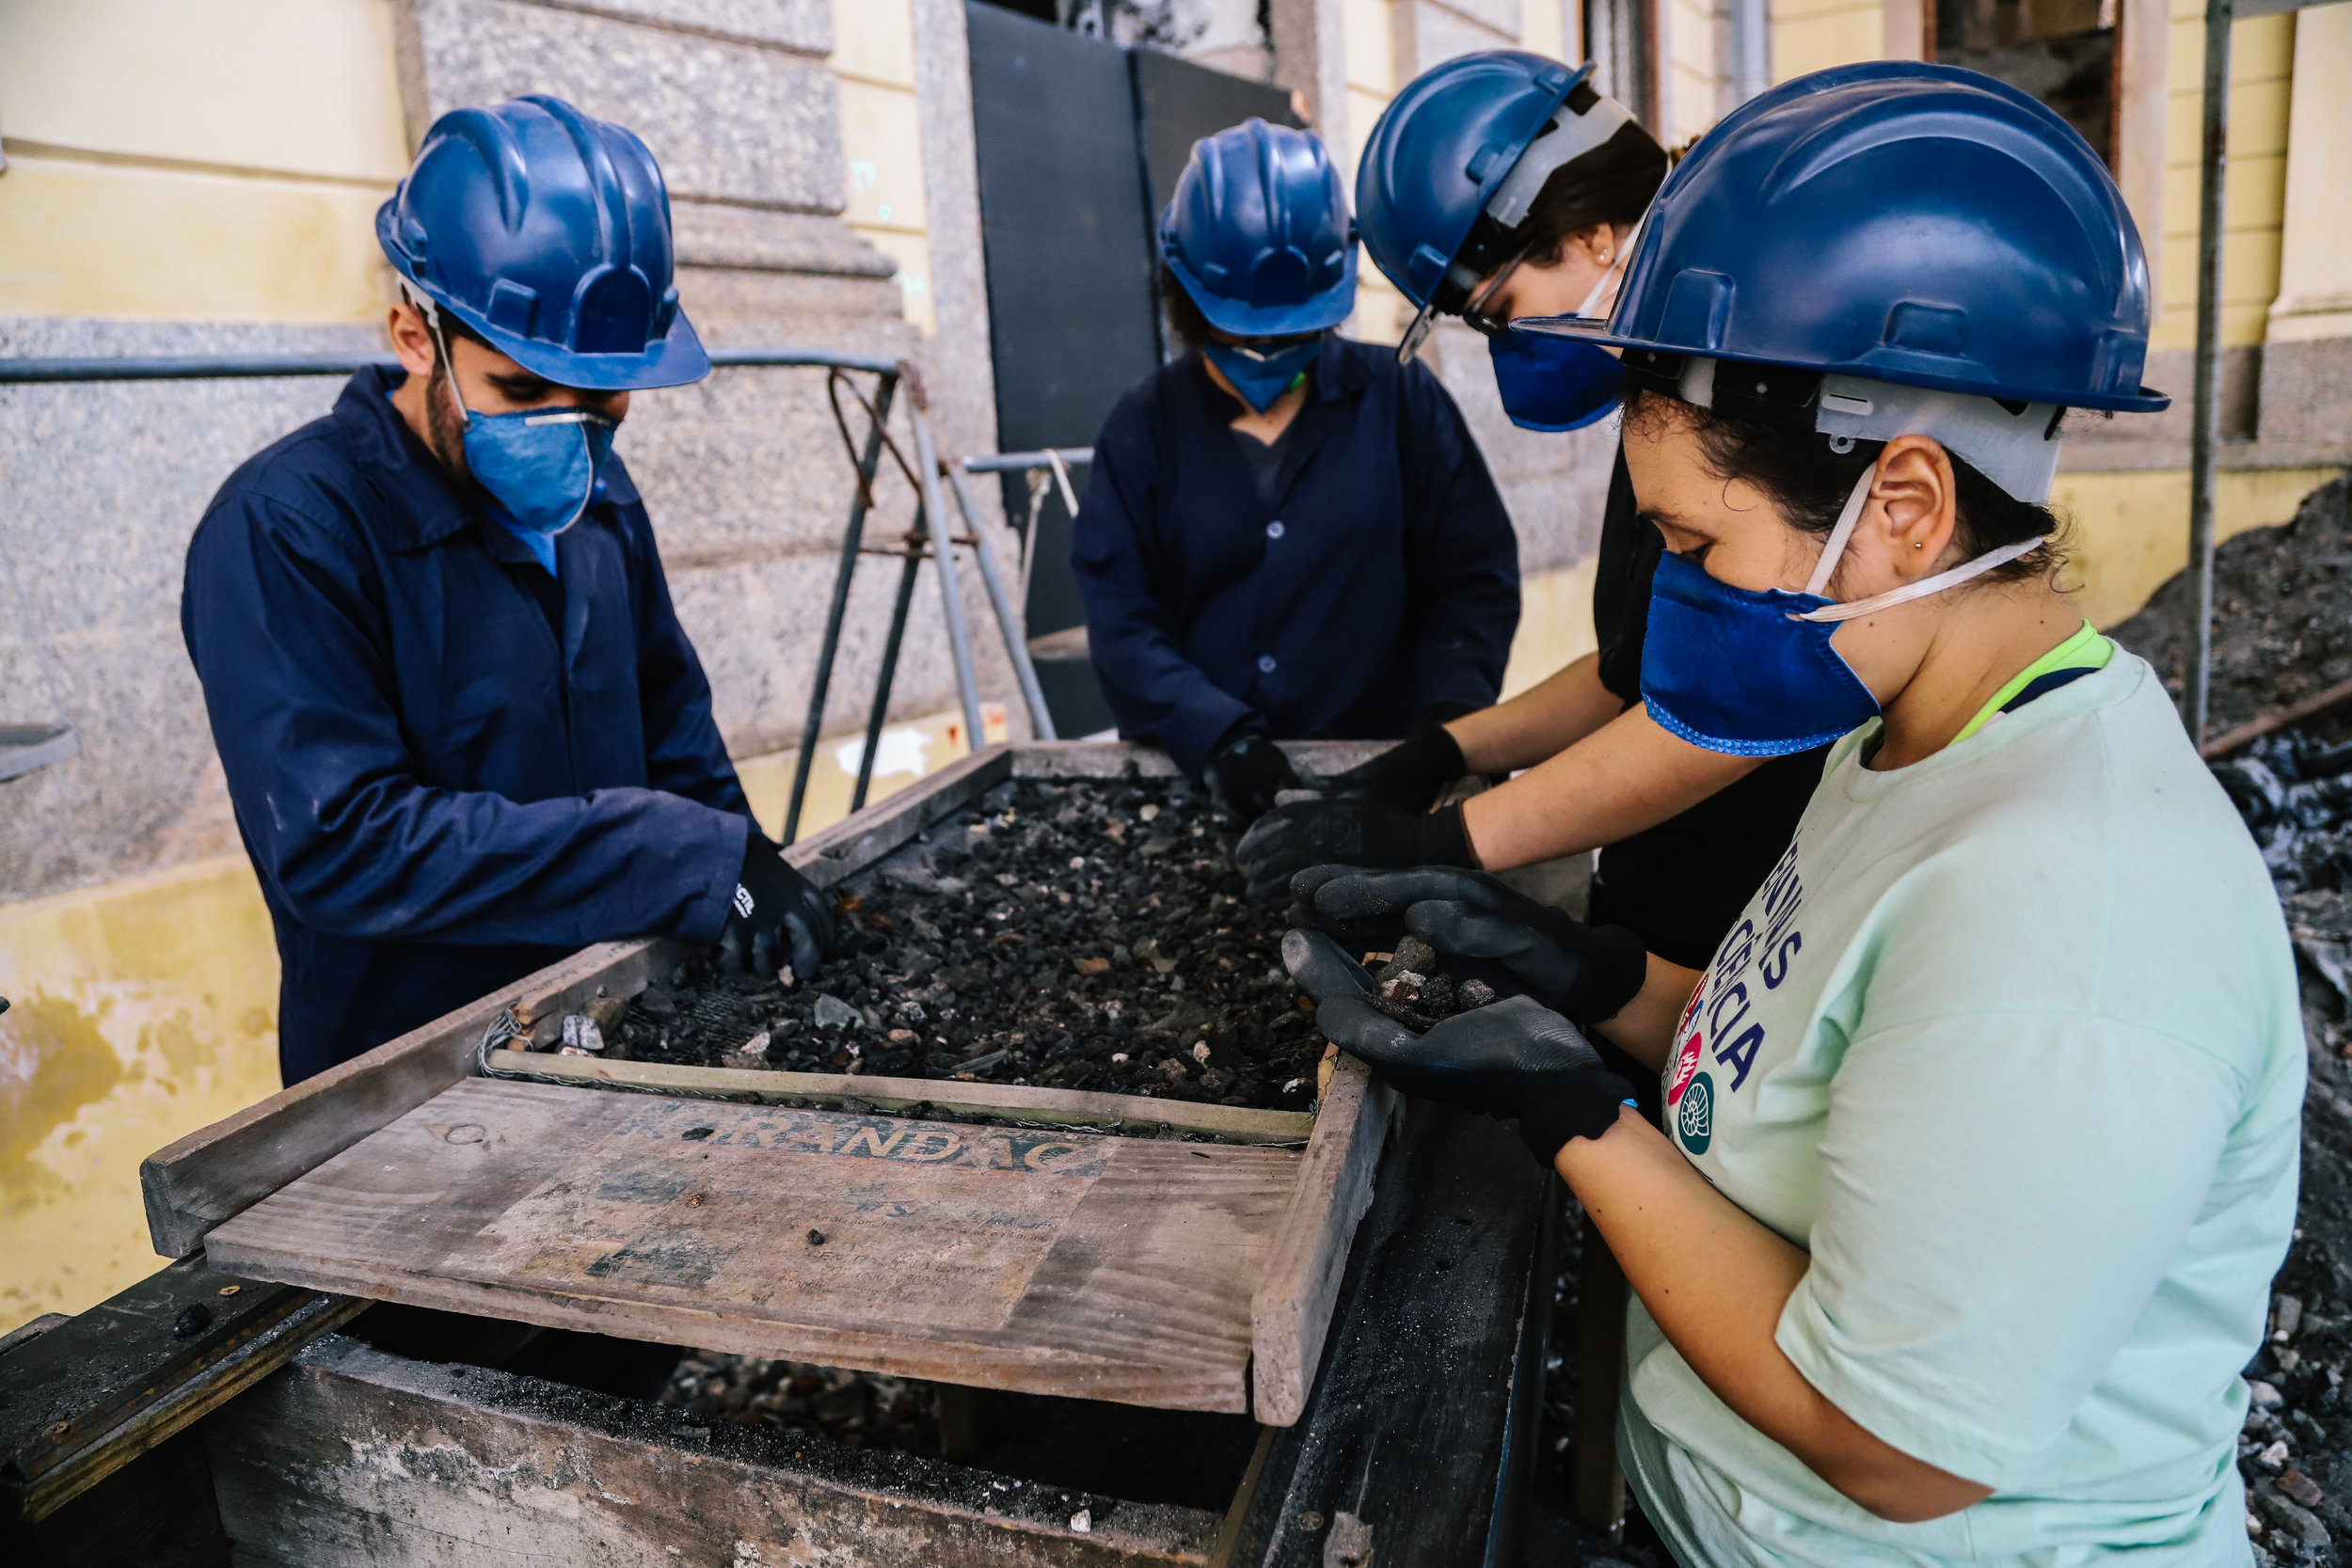 Graduate student volunteers sift through rubble from inside the museum. Students were eager to offer help after the fire, so a formal course was created to facilitate student support in the recovery effort in the months following the fire.